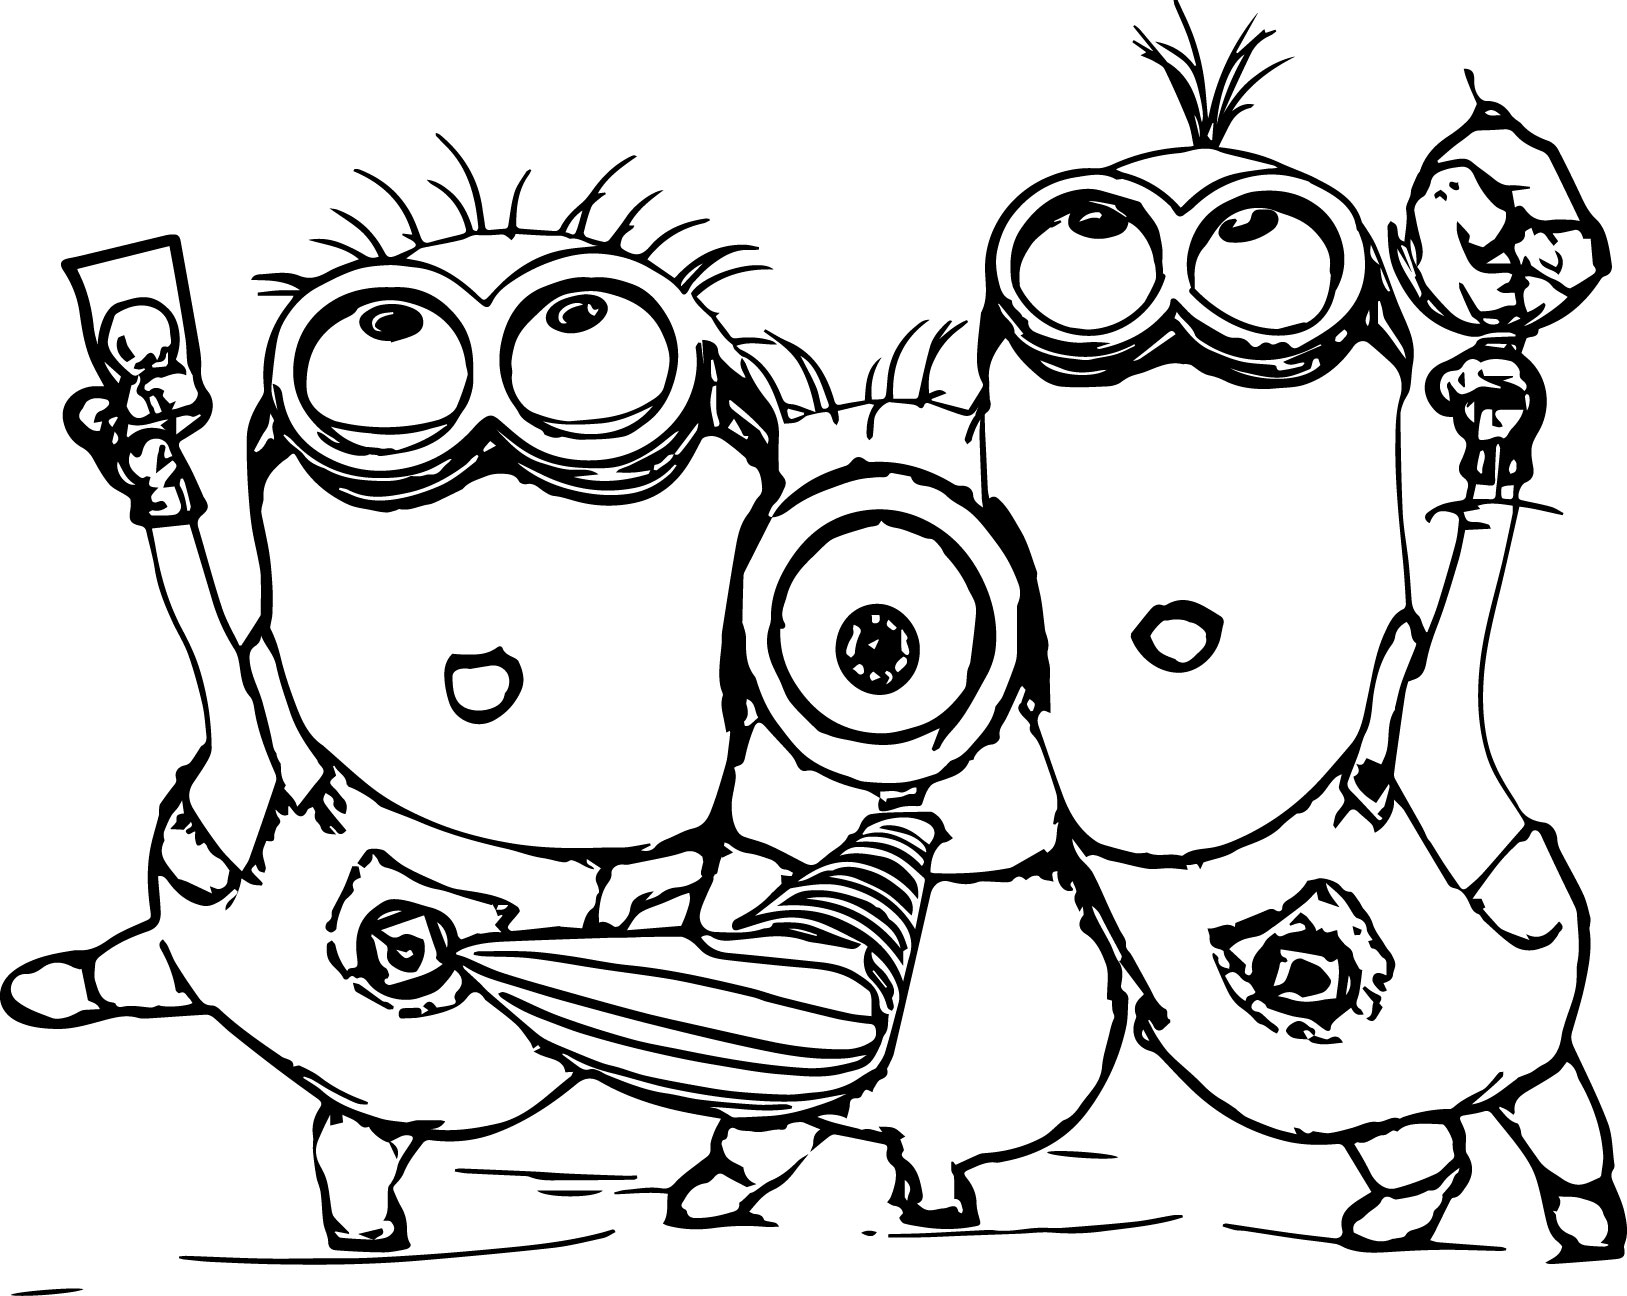 despicable me minions coloring pages despicable me gru margo edith agnes and the gru39s pages me minions coloring despicable